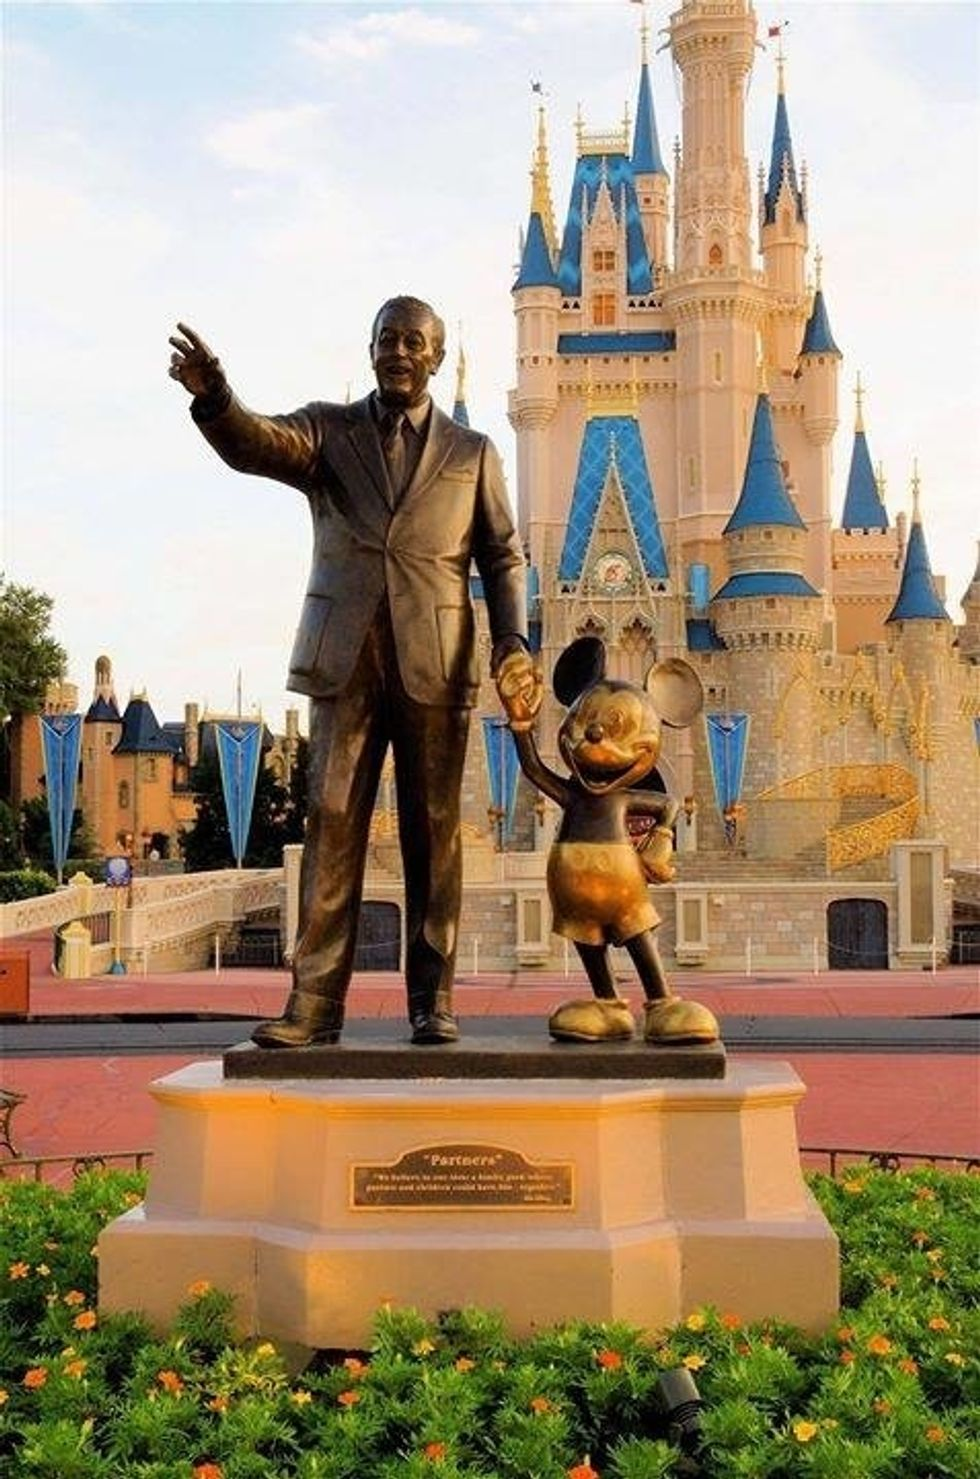 13 Magical Options For Guests To Experience At Disney World That Don't Involve Going To A Park